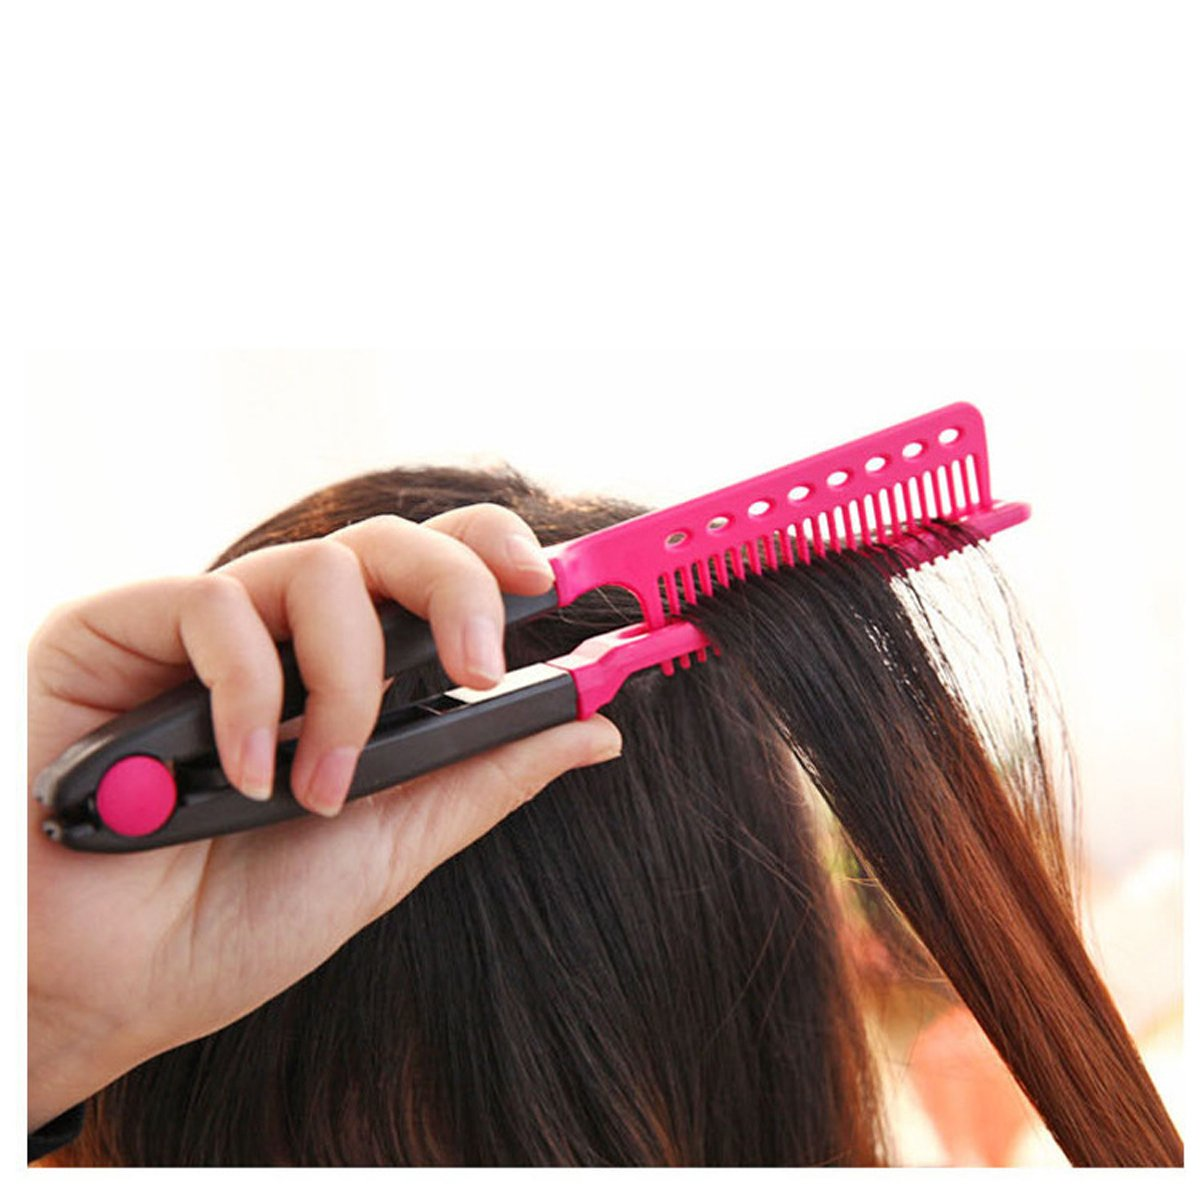 TECHSON V Shaped Easy Comb, Hair Straightening Comb, Hairdressing Tool for Salon, Home use (Pink)